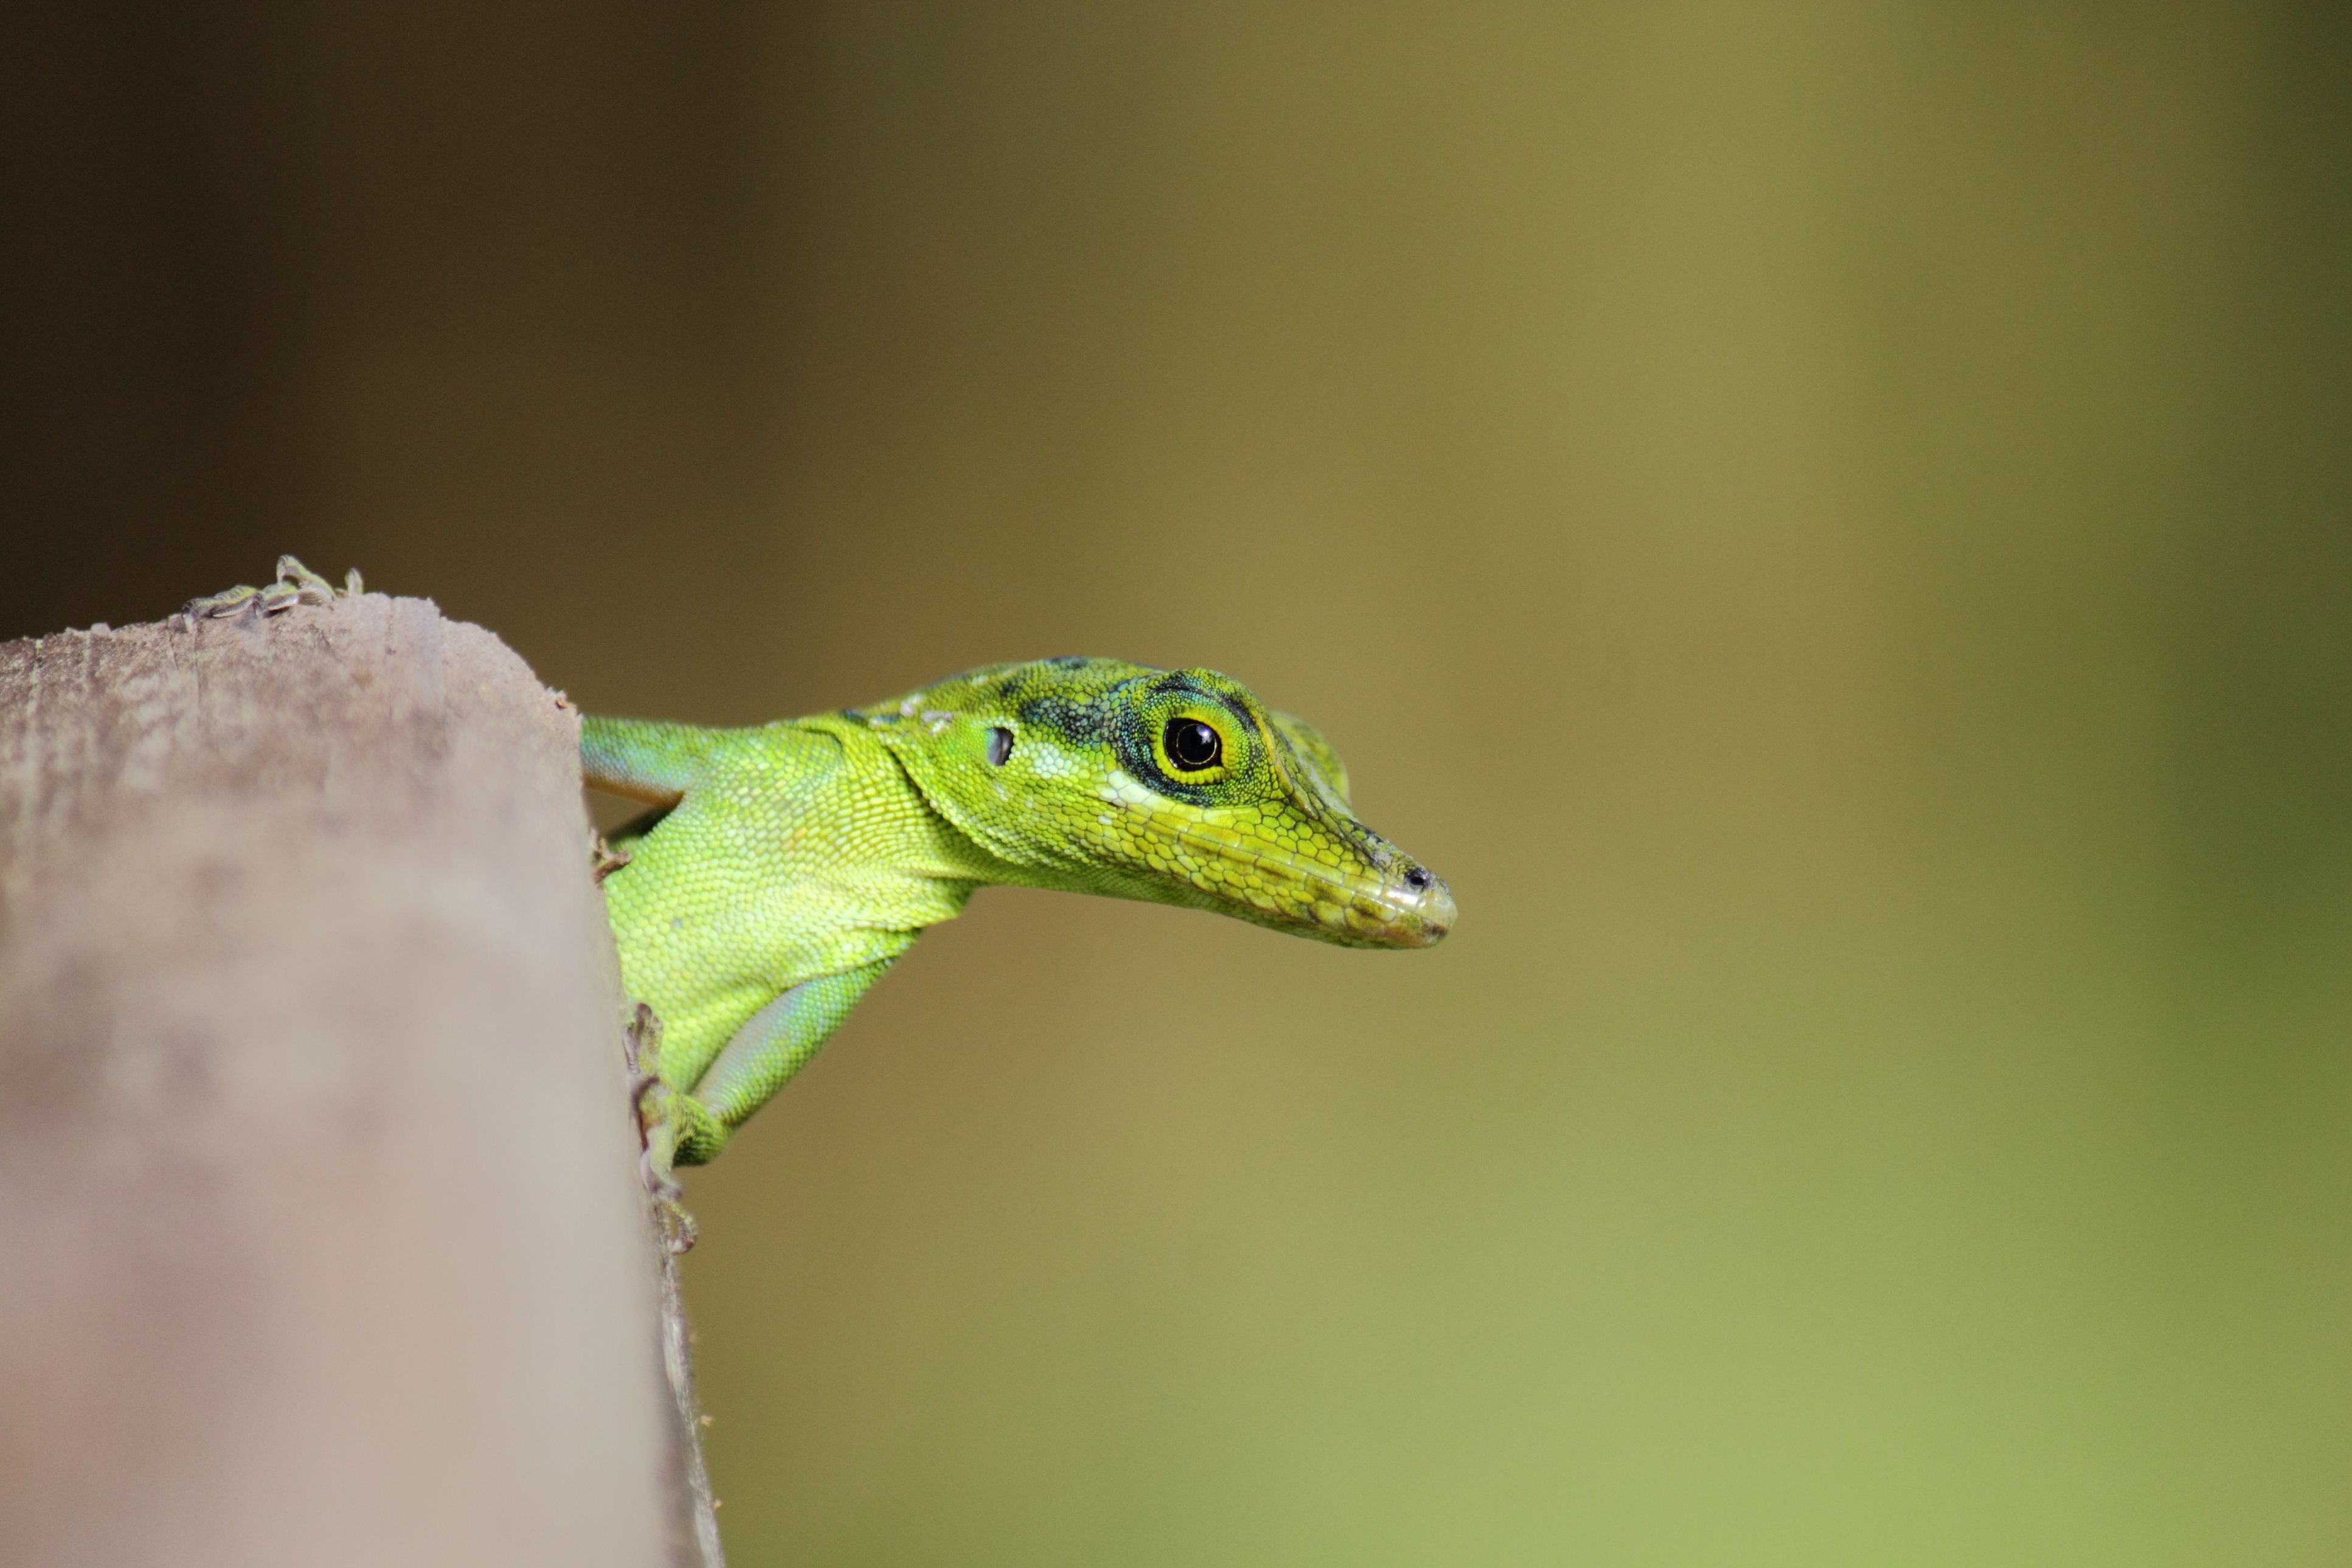 Martinique's anole (Anolis roquet), also called savannah anole, is a species of anole lizard. It is endemic to the island of Martinique, located in the Caribbean Lesser Antilles.